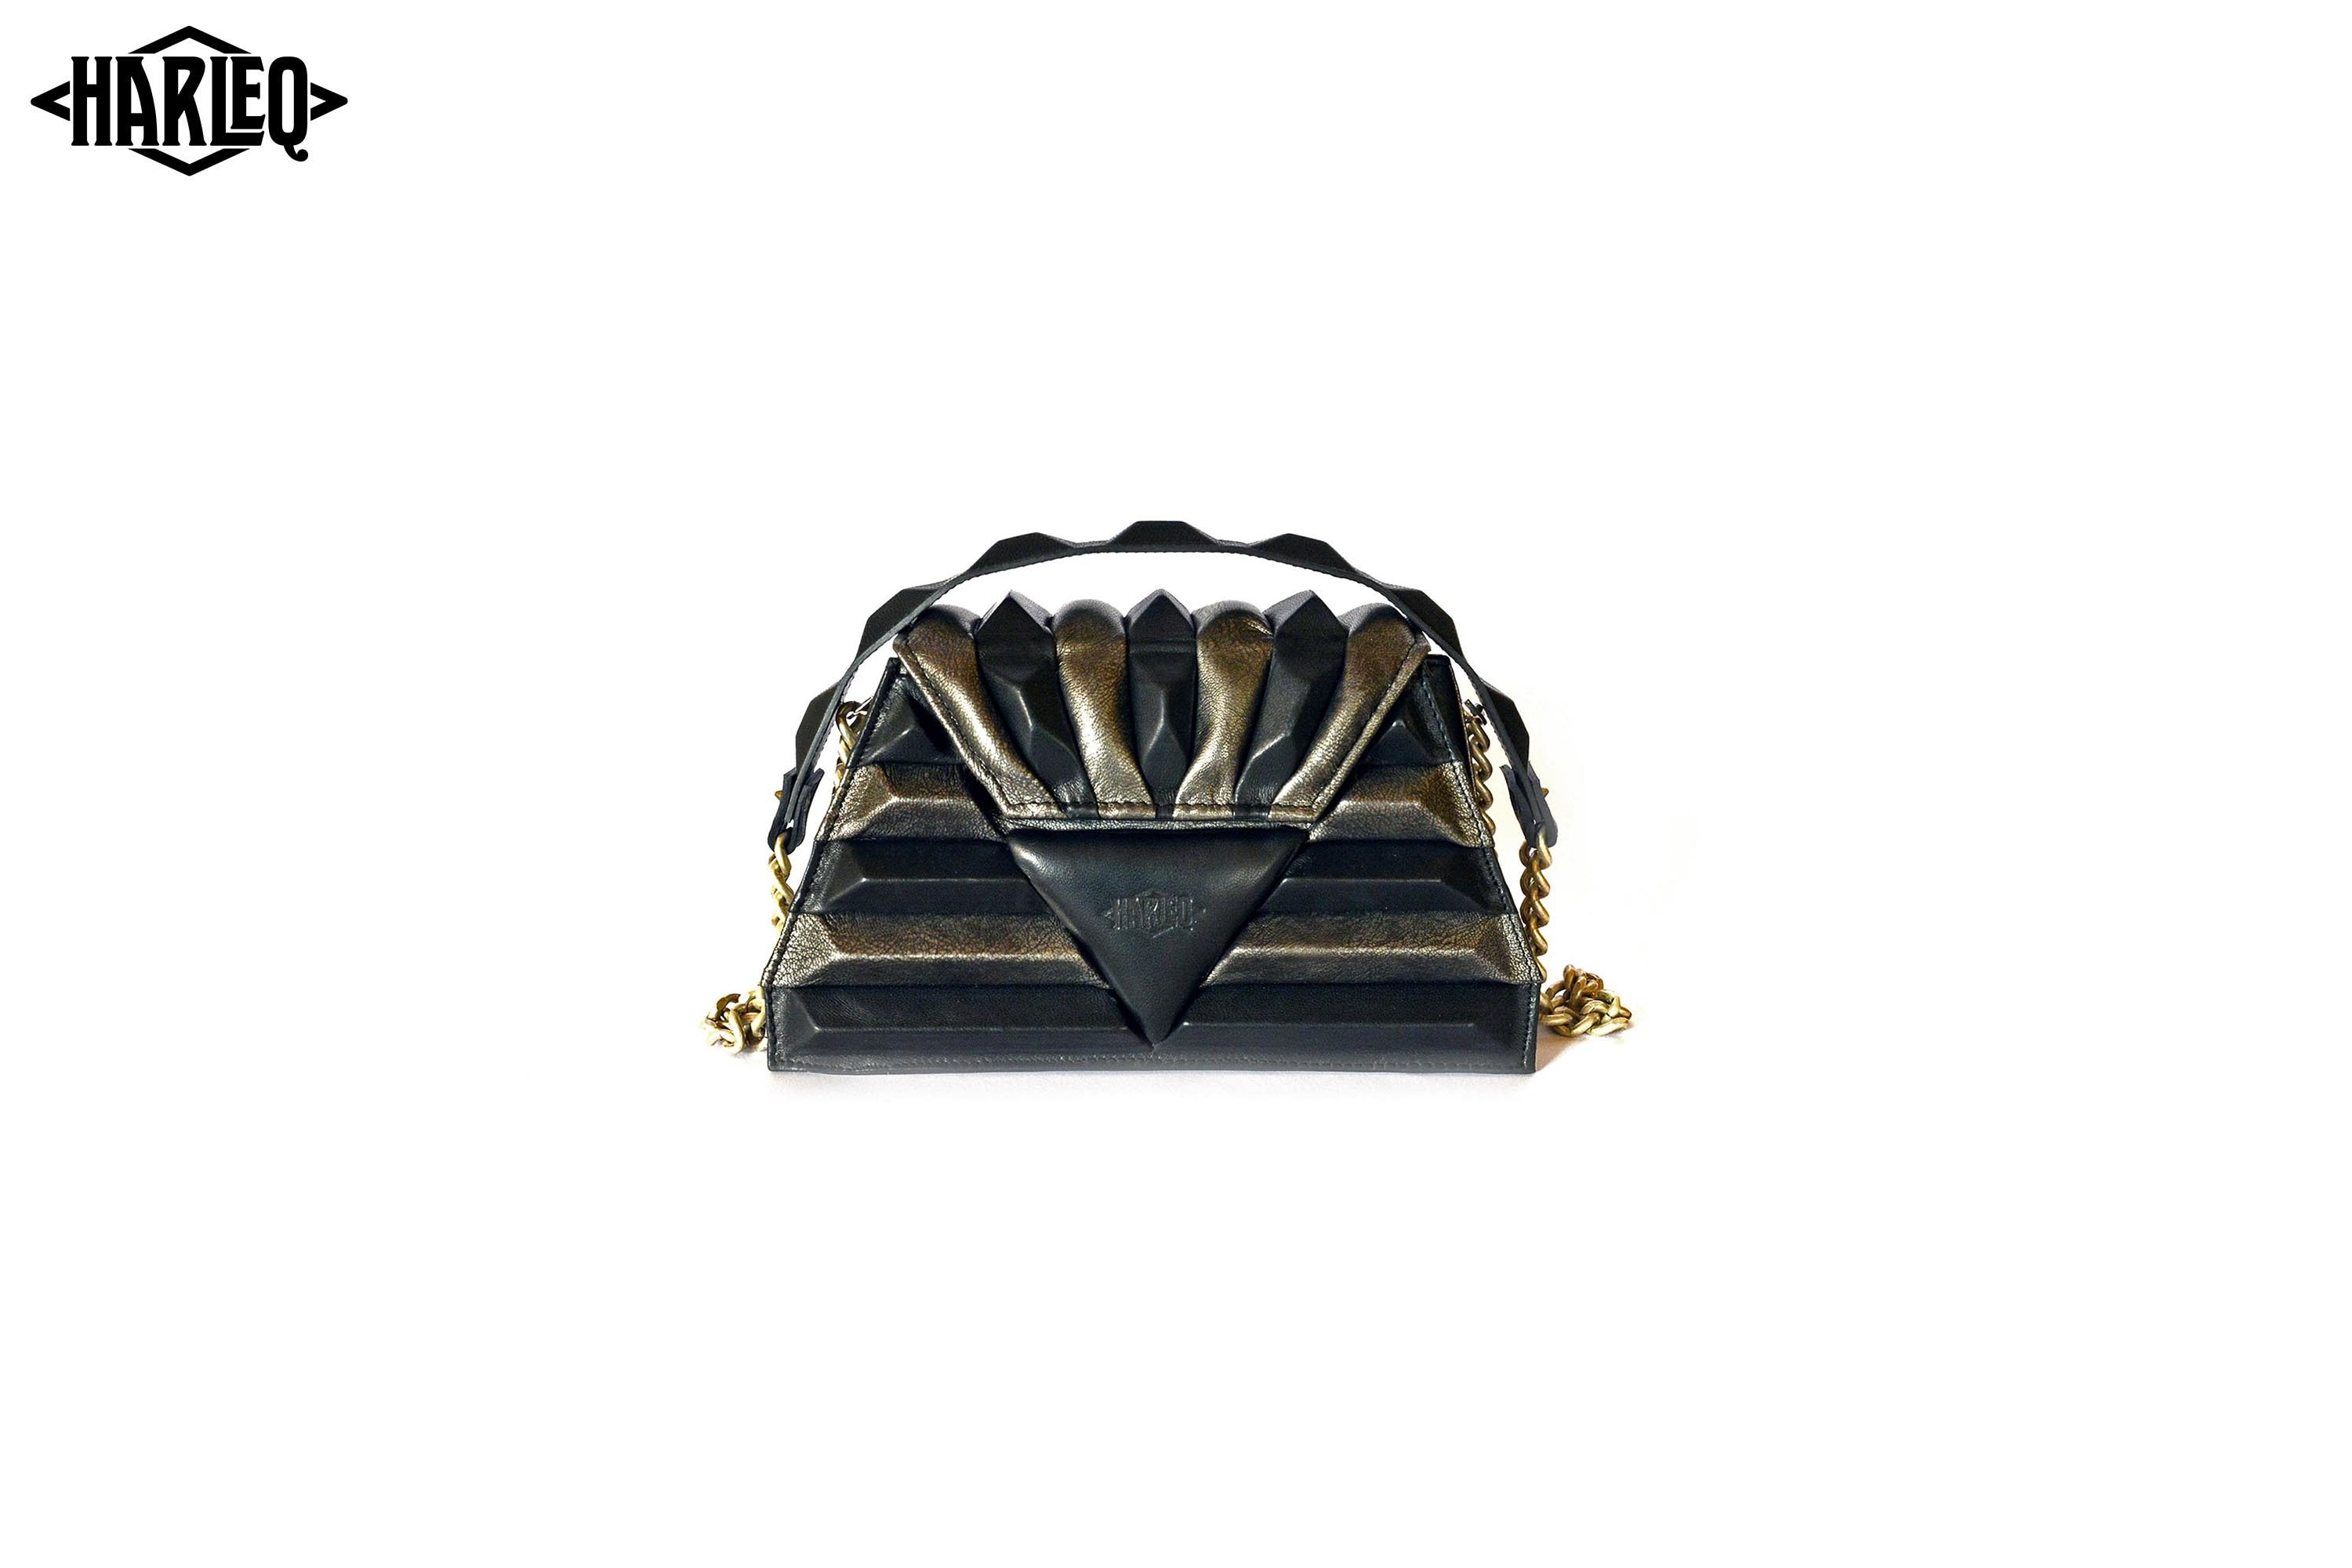 grey black leathers pochette harleq sphinx